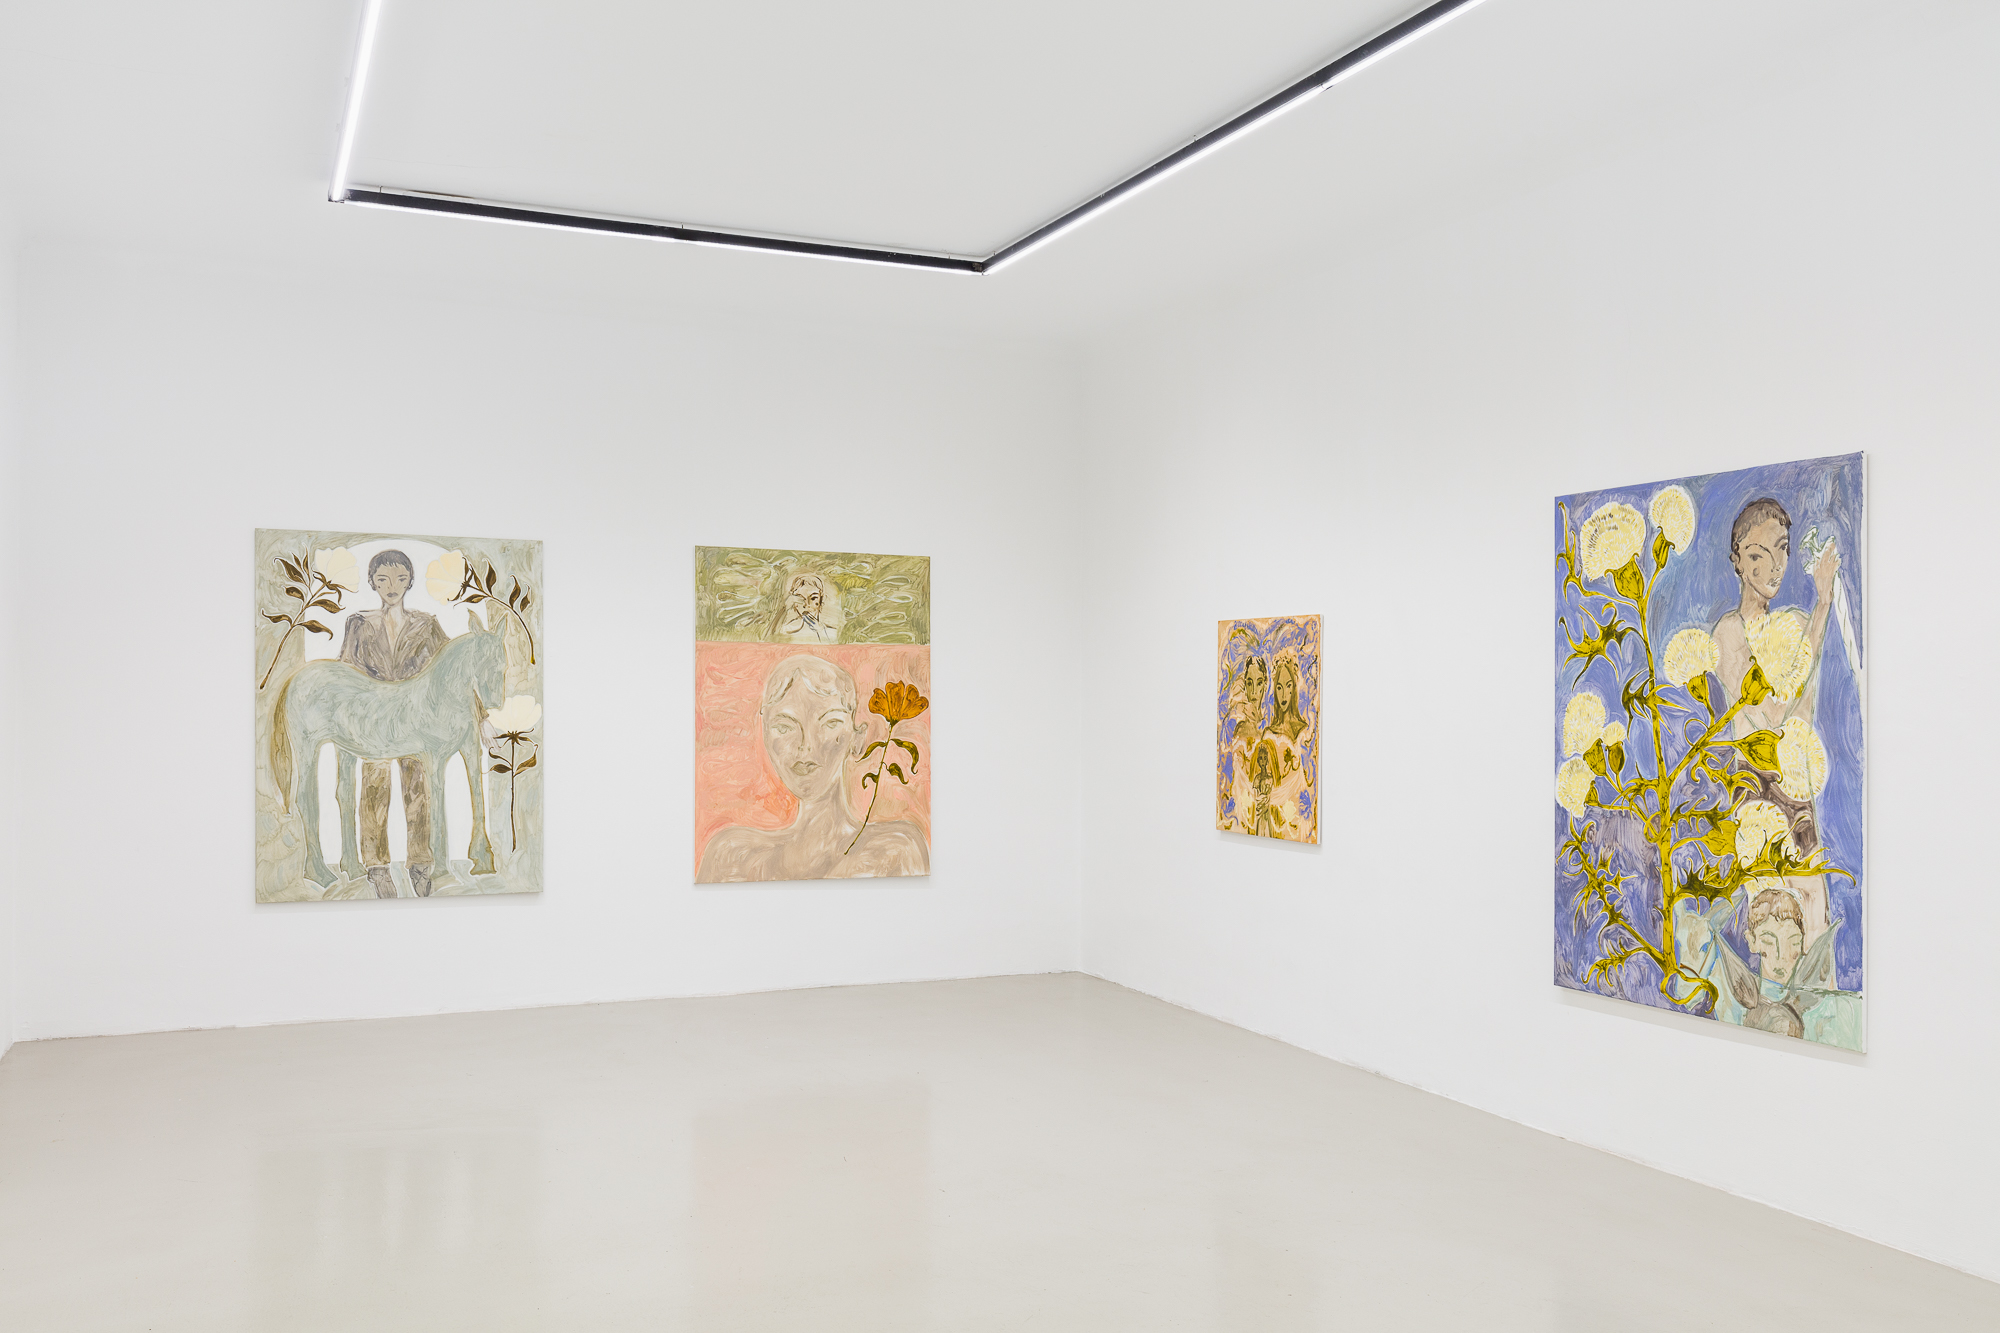 Installation View, Moon - Faye Wei Wei at Galerie Kandlhofer, Courtesy of the artist and the gallery